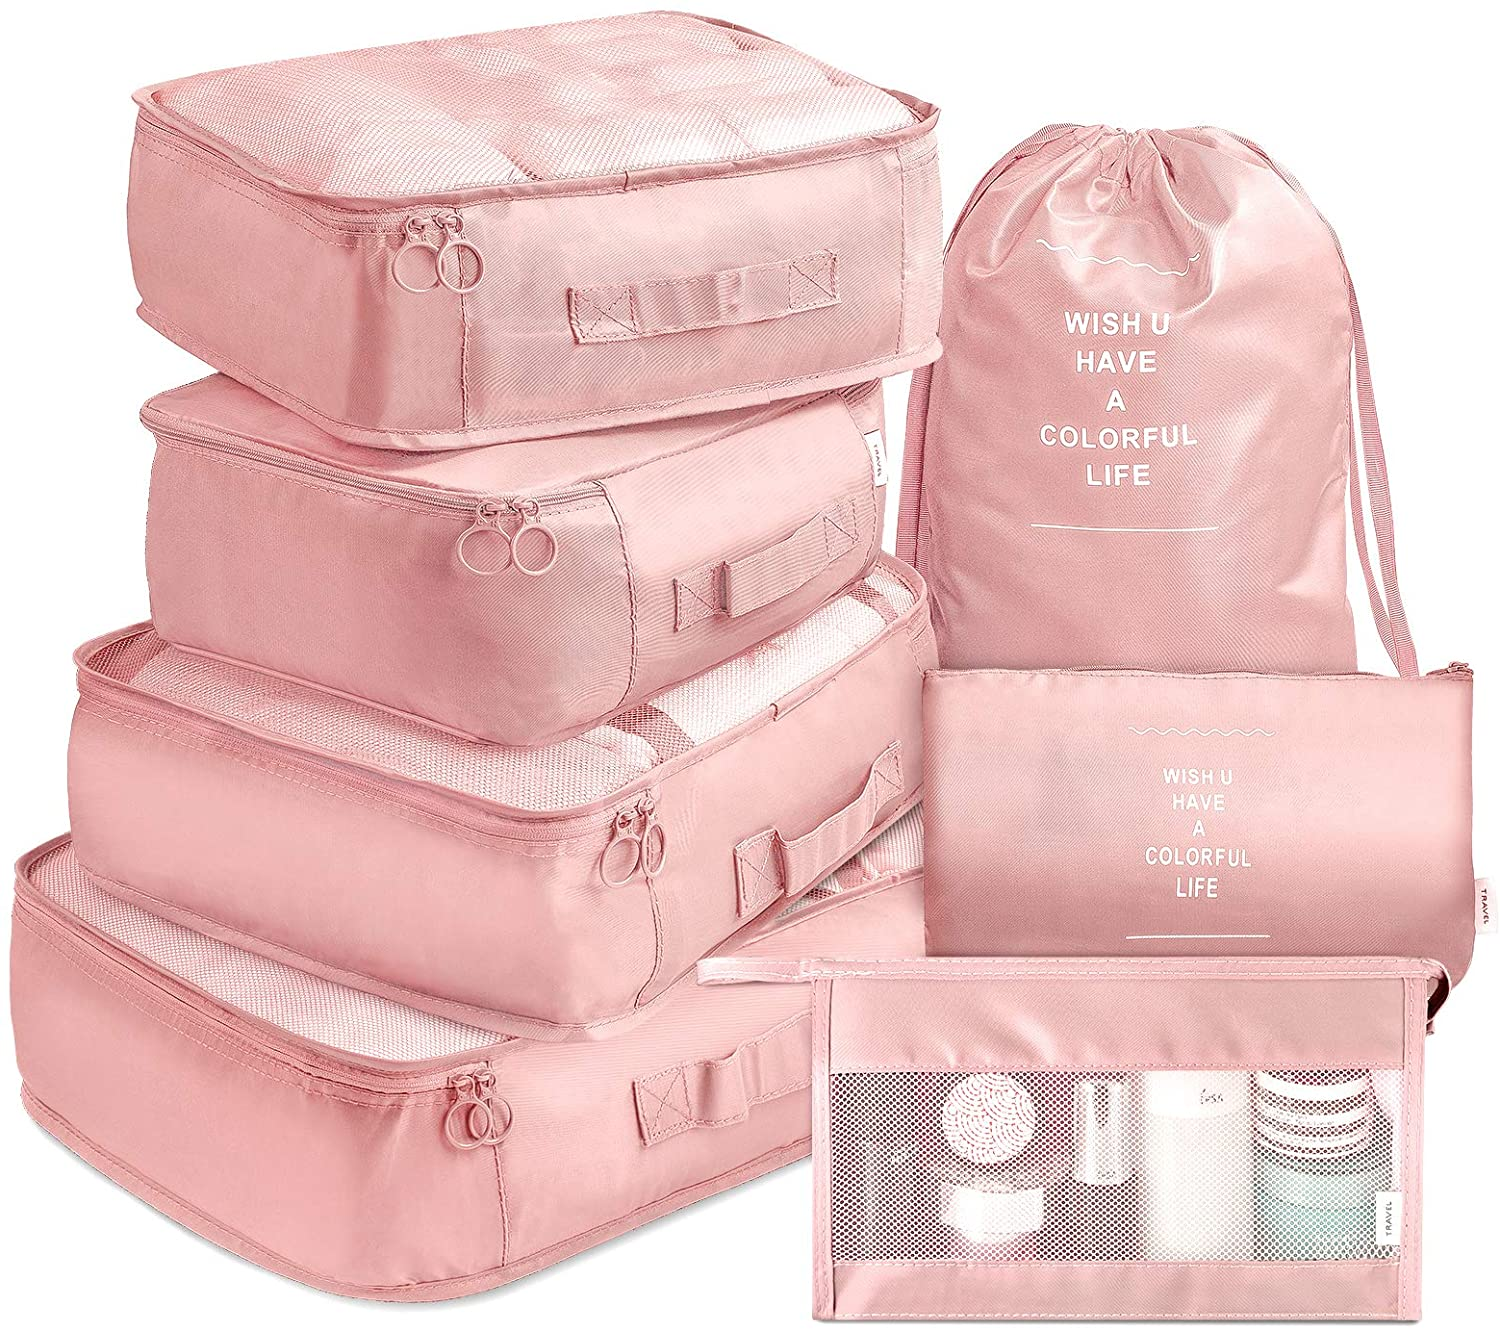 Seven-Piece Packing Cube Set